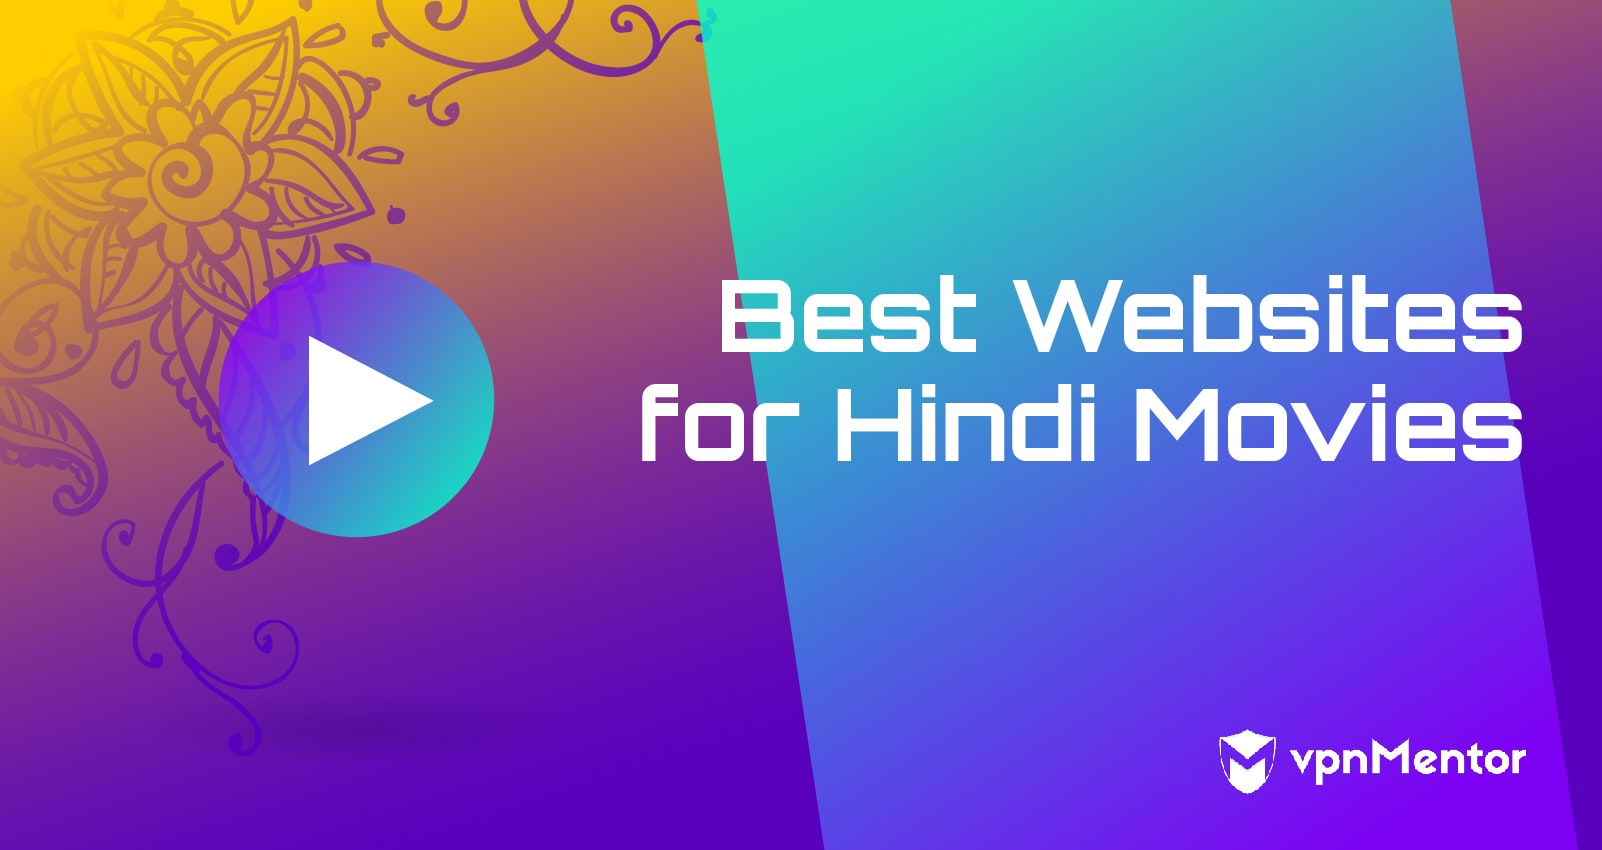 Best Websites for Hindi Movies